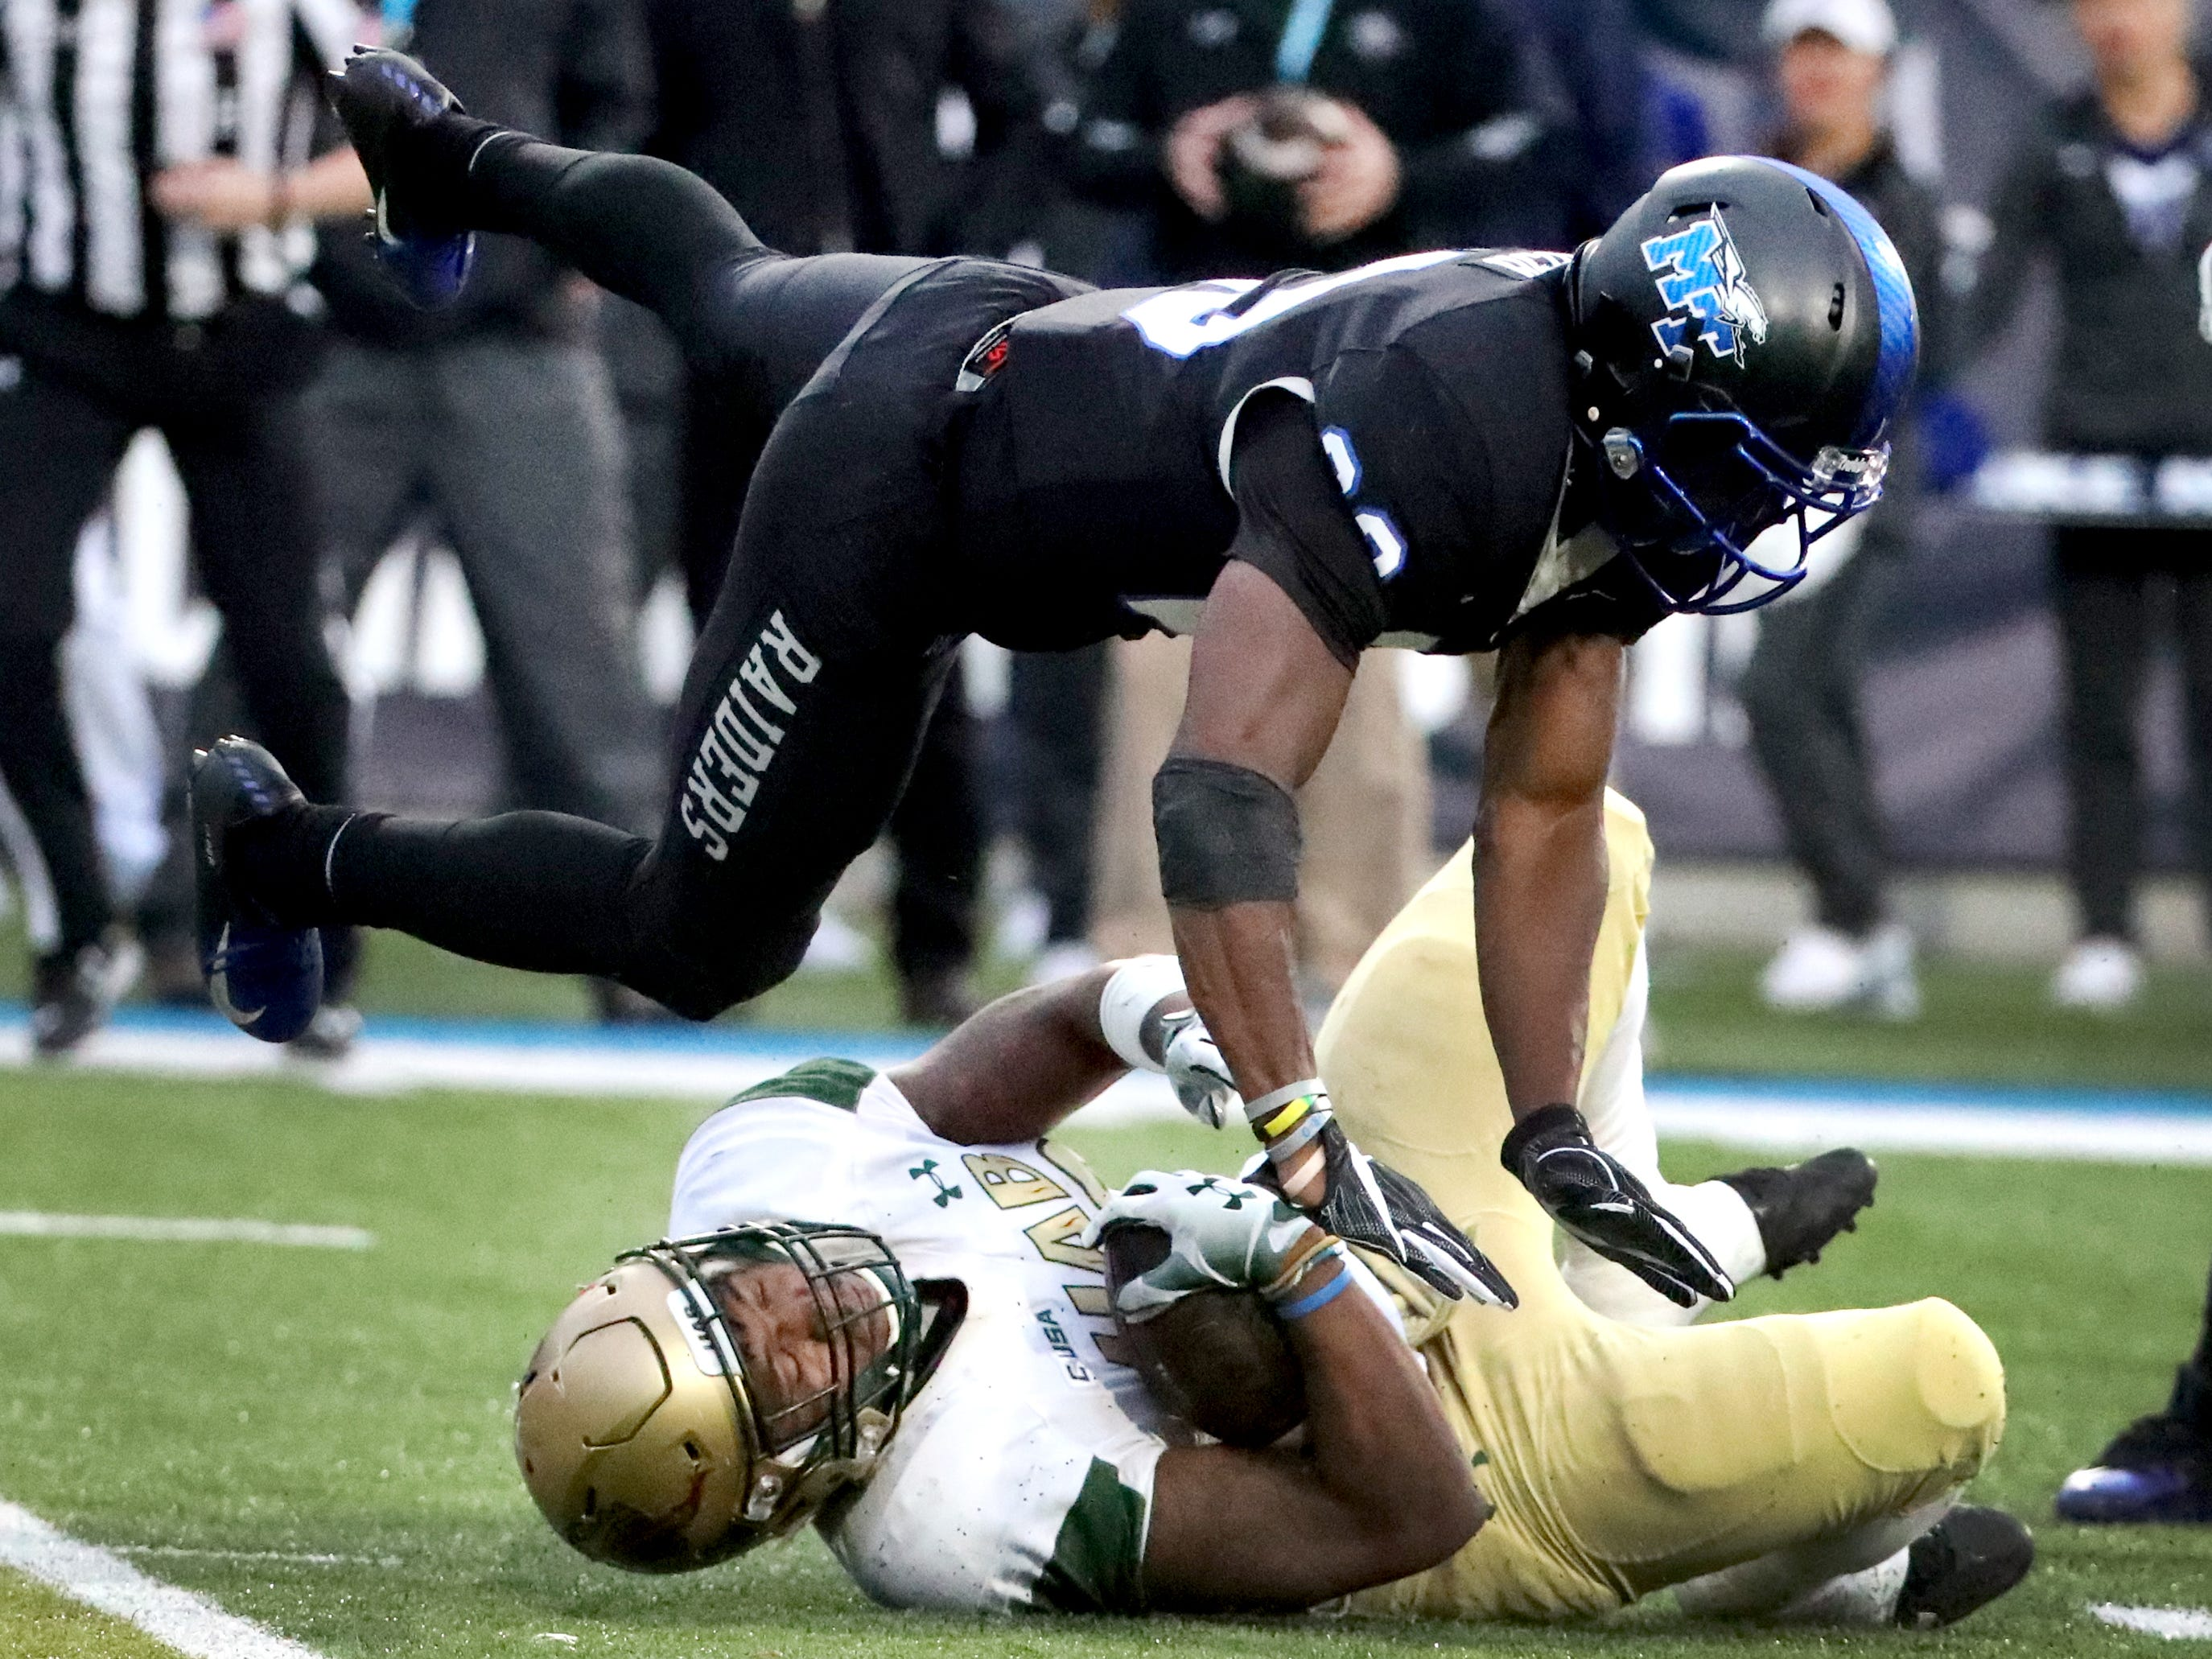 UAB's linebacker Kristopher Moll (20) crashes into MTSU's defensive back Wesley Bush (23) after safety Reed Blankenship (12) brings down Moll during the Conference USA Championship at MTSU on Saturday, Dec. 1, 2018.